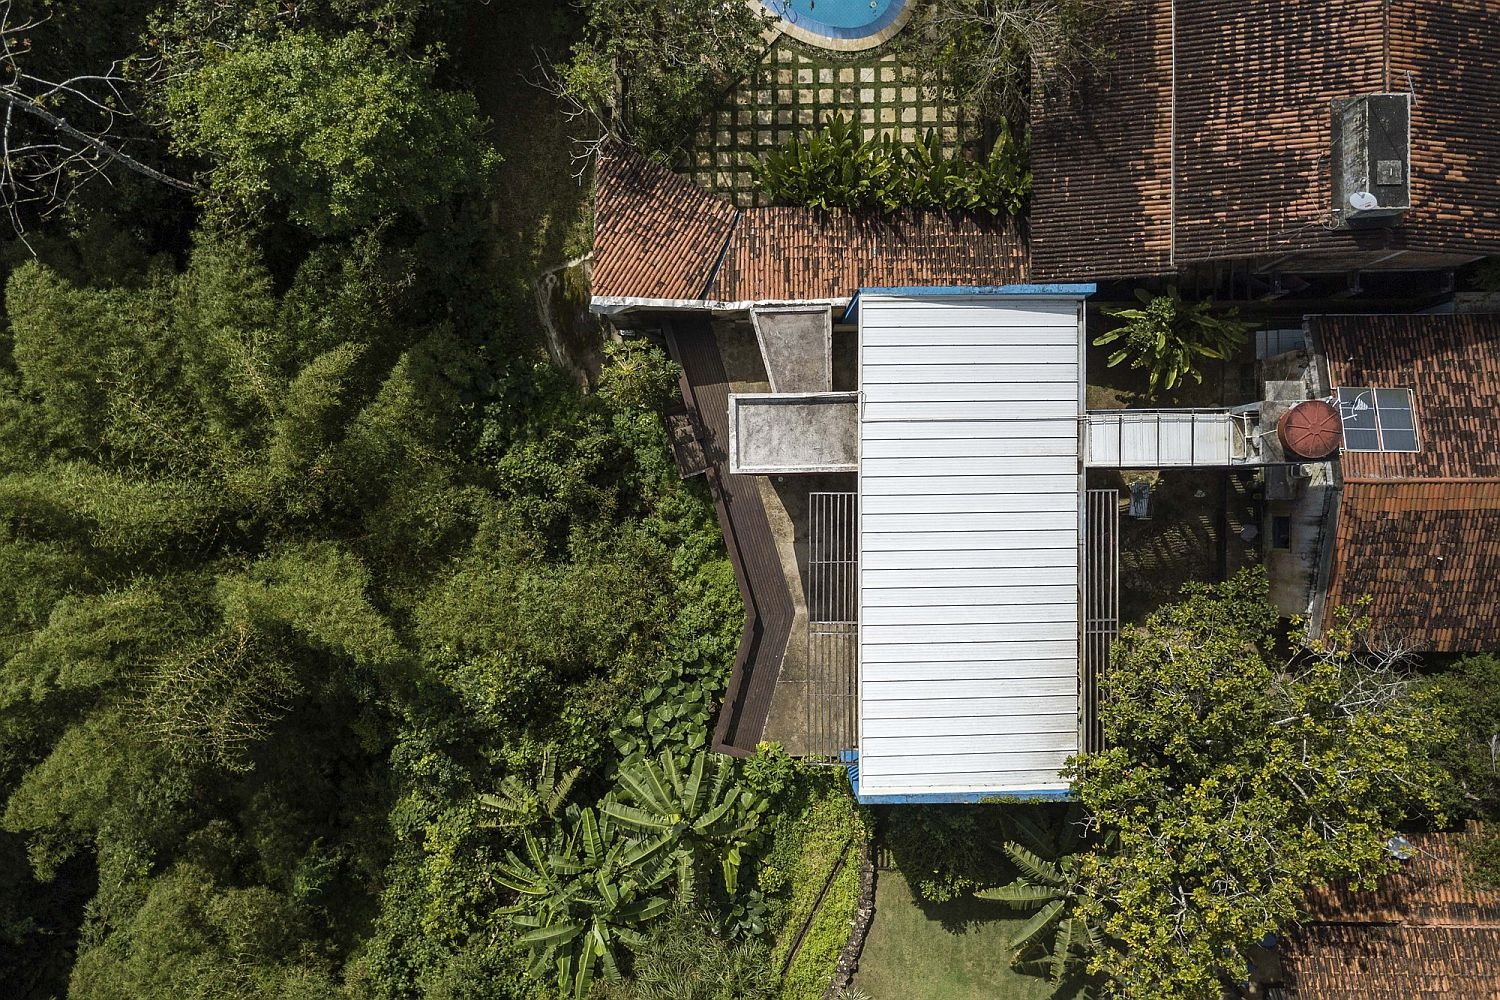 View-from-the-sky-of-the-extended-modern-house-in-Brazils-surrounded-by-jungles